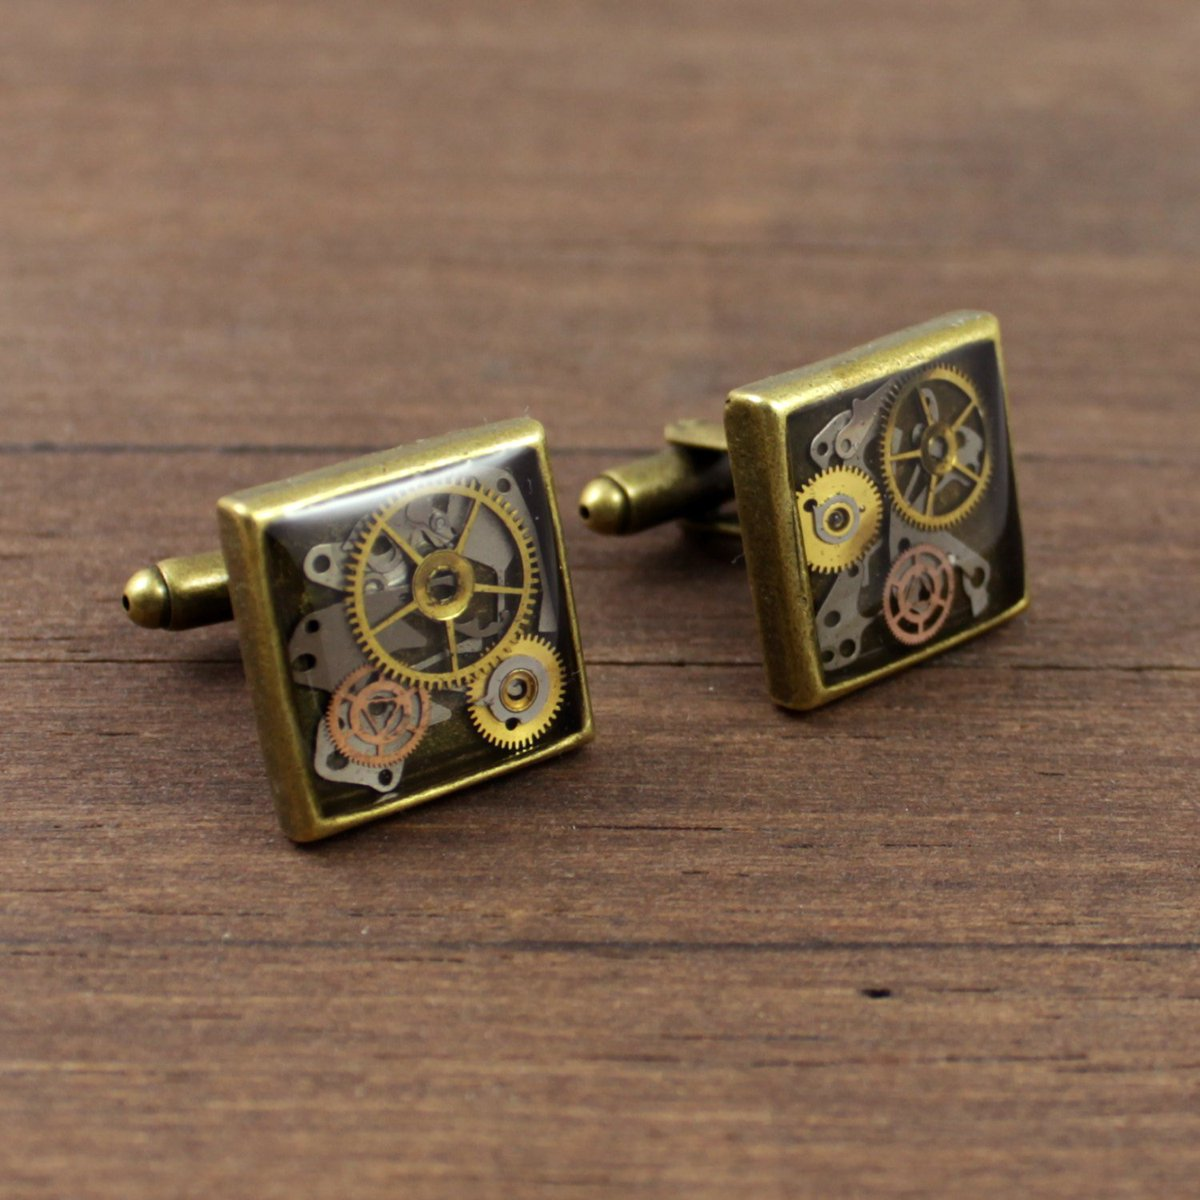 Steampunk Cufflinks, Watch cufflinks, Watch Parts Cufflinks, Men c… https://t.co/lxXZvriNpn #Nestre #BronzeCufflinks